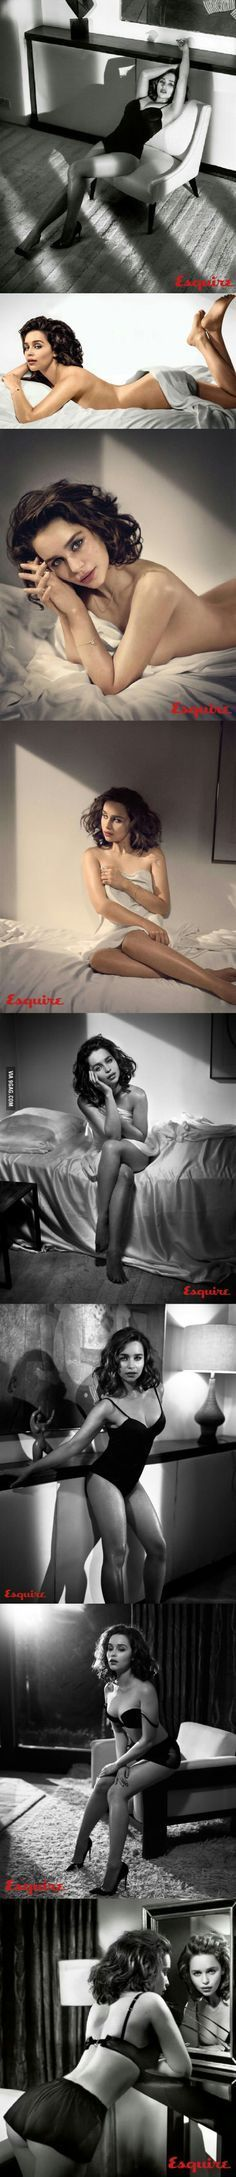 Emilia Clarke - Mother of Dragons?